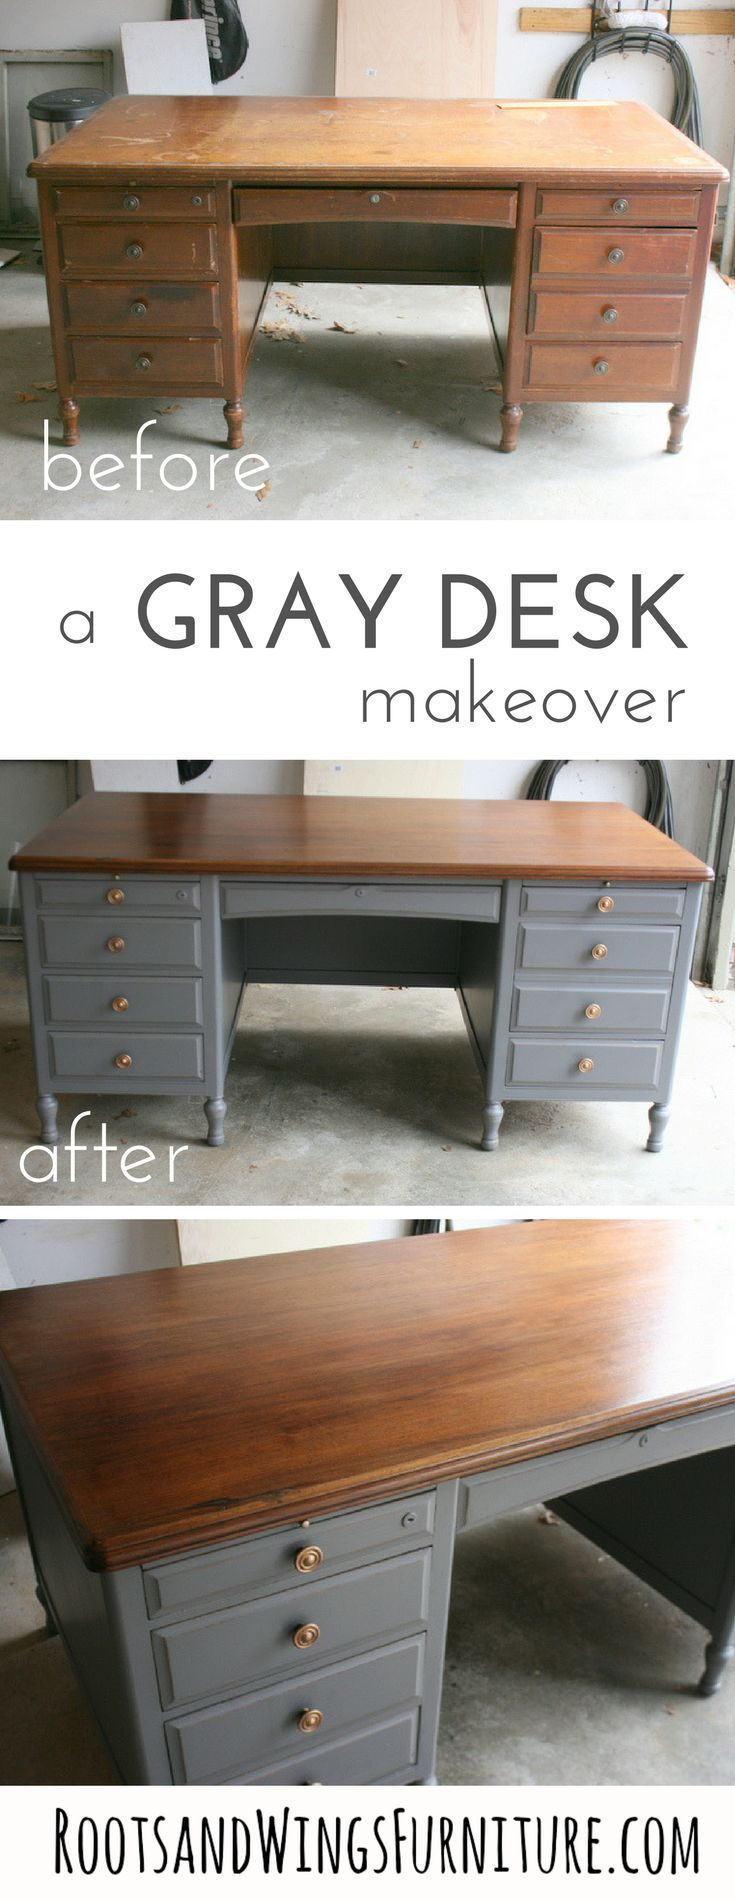 A refinished gray executive style desk. Top refinished wood, base refinished with Driftwood Gray Milk Paint. Before and After by Jenni of Roots and Wings Furniture. #paintingfurniture